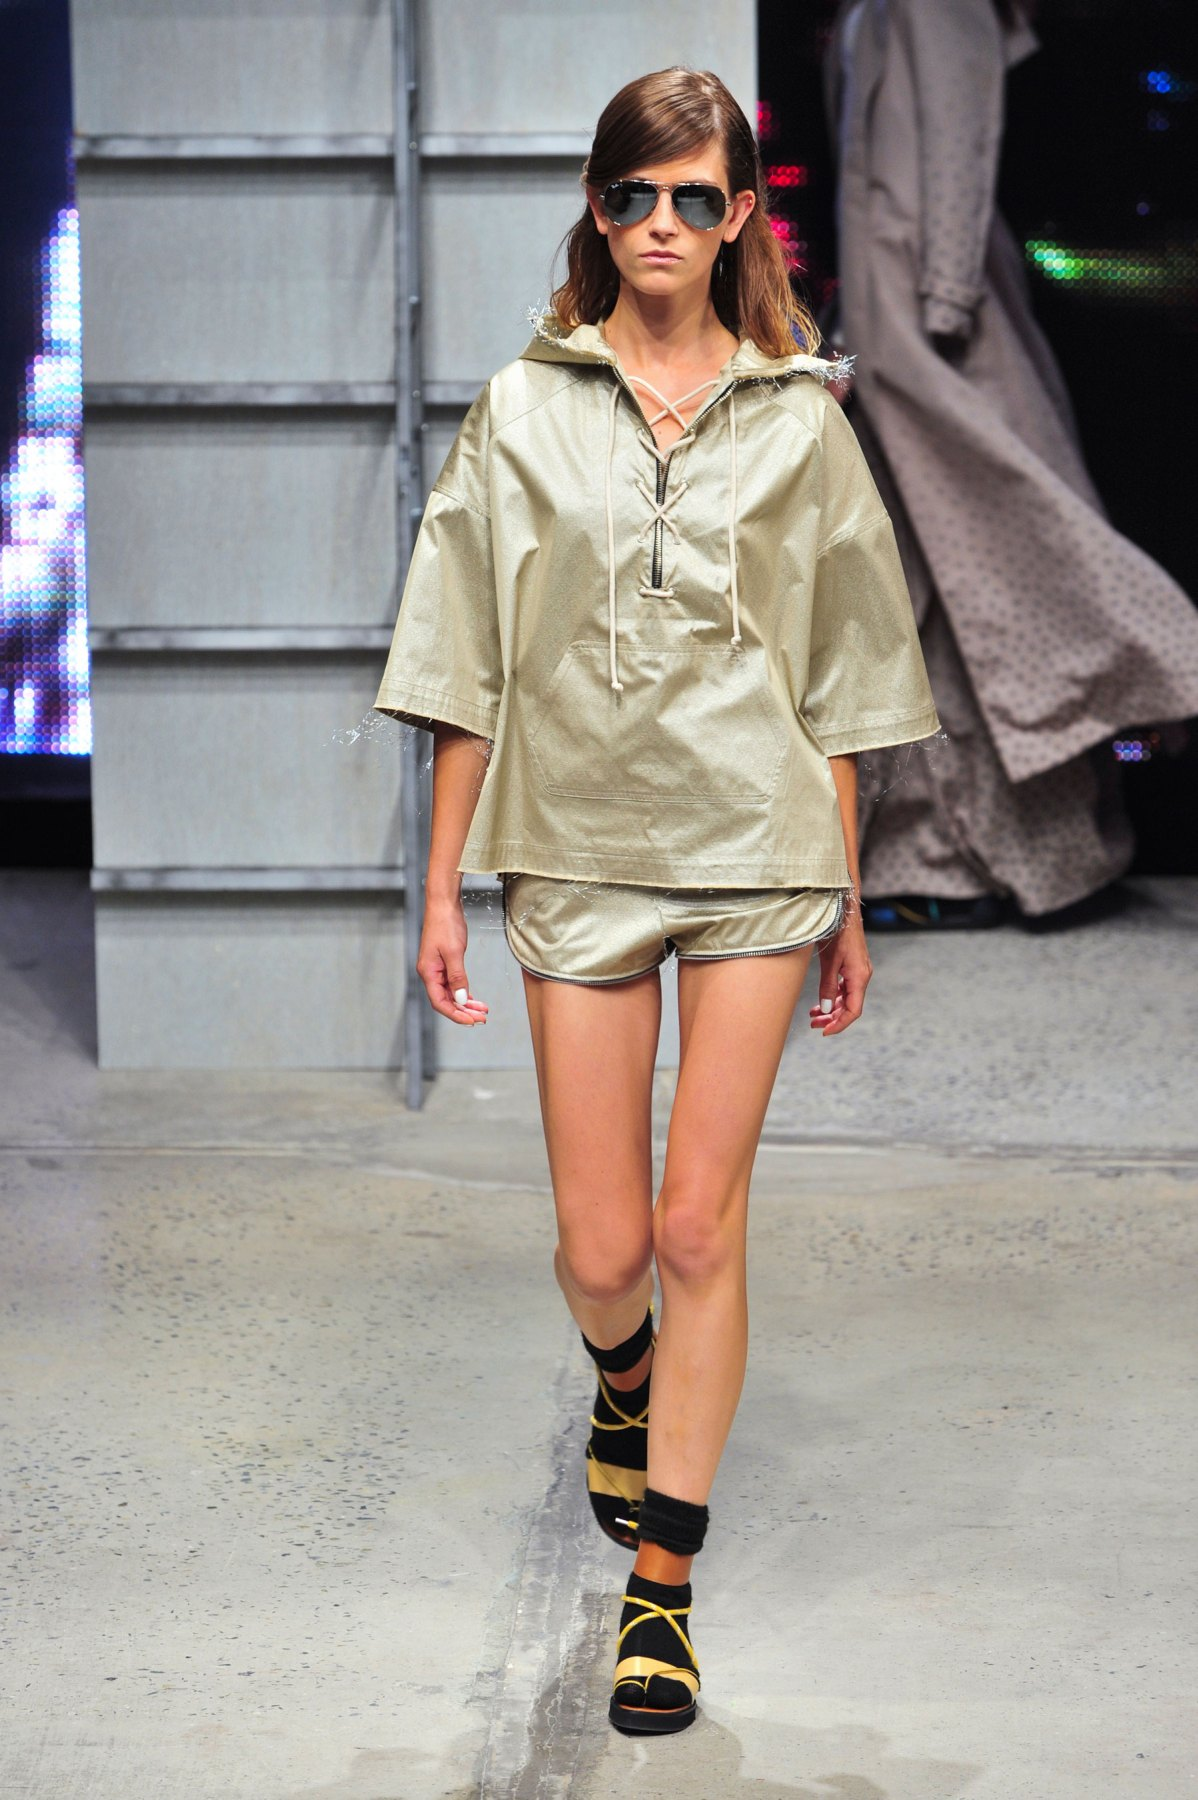 desfile-band-of-outsiders-nova-york-verao-2014-014